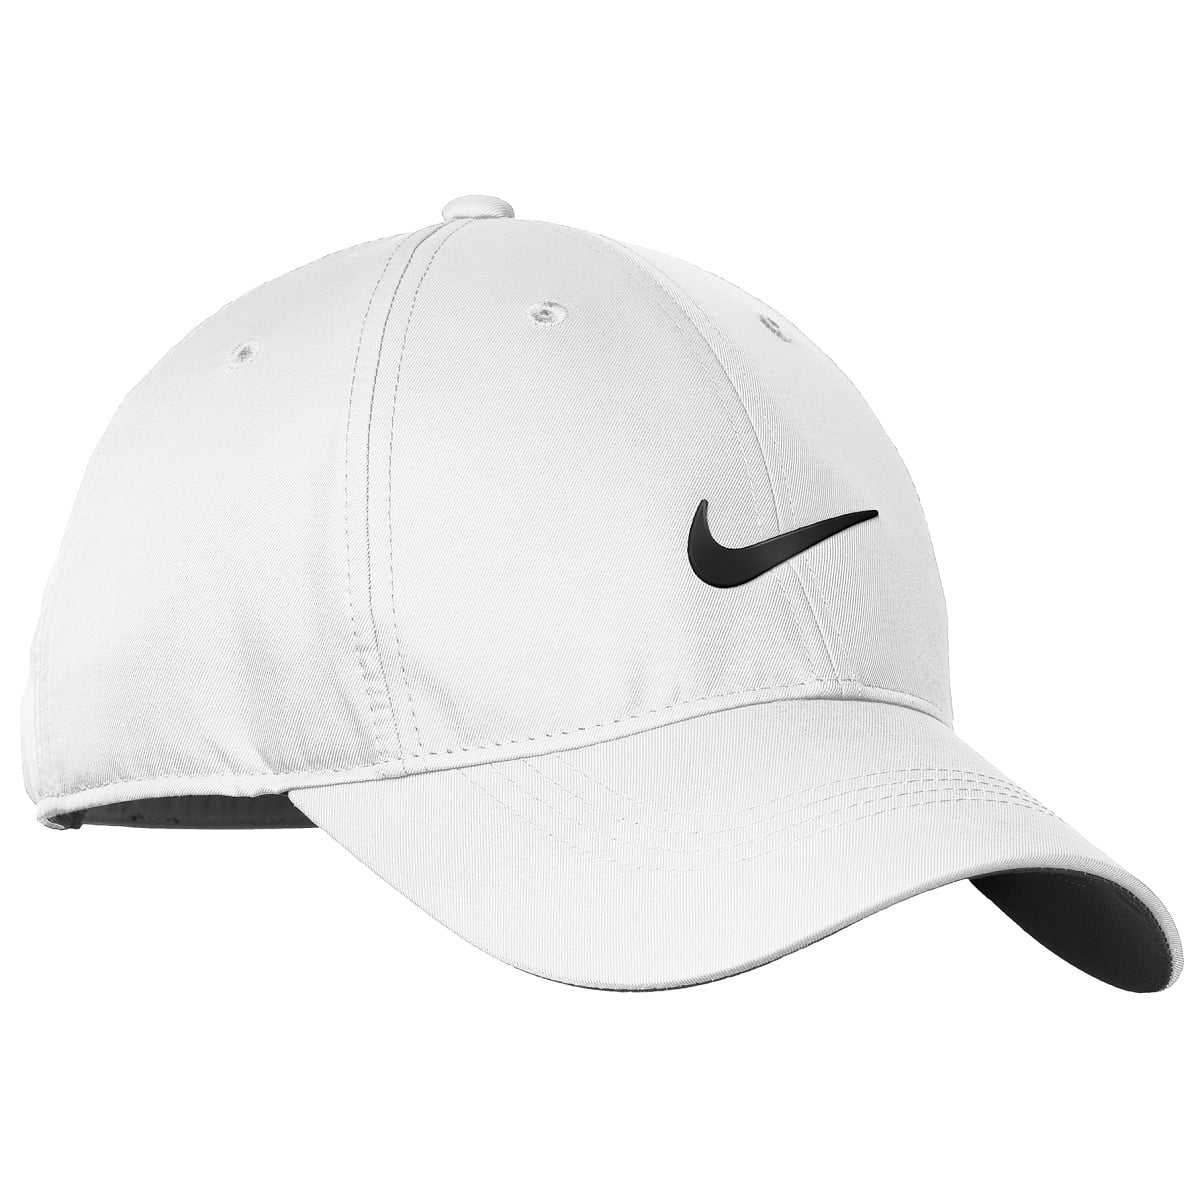 NEW Nike Golf Tech Swoosh Dri-Fit Unstructured White Black Hat Cap -  Walmart.com 29808413fdc